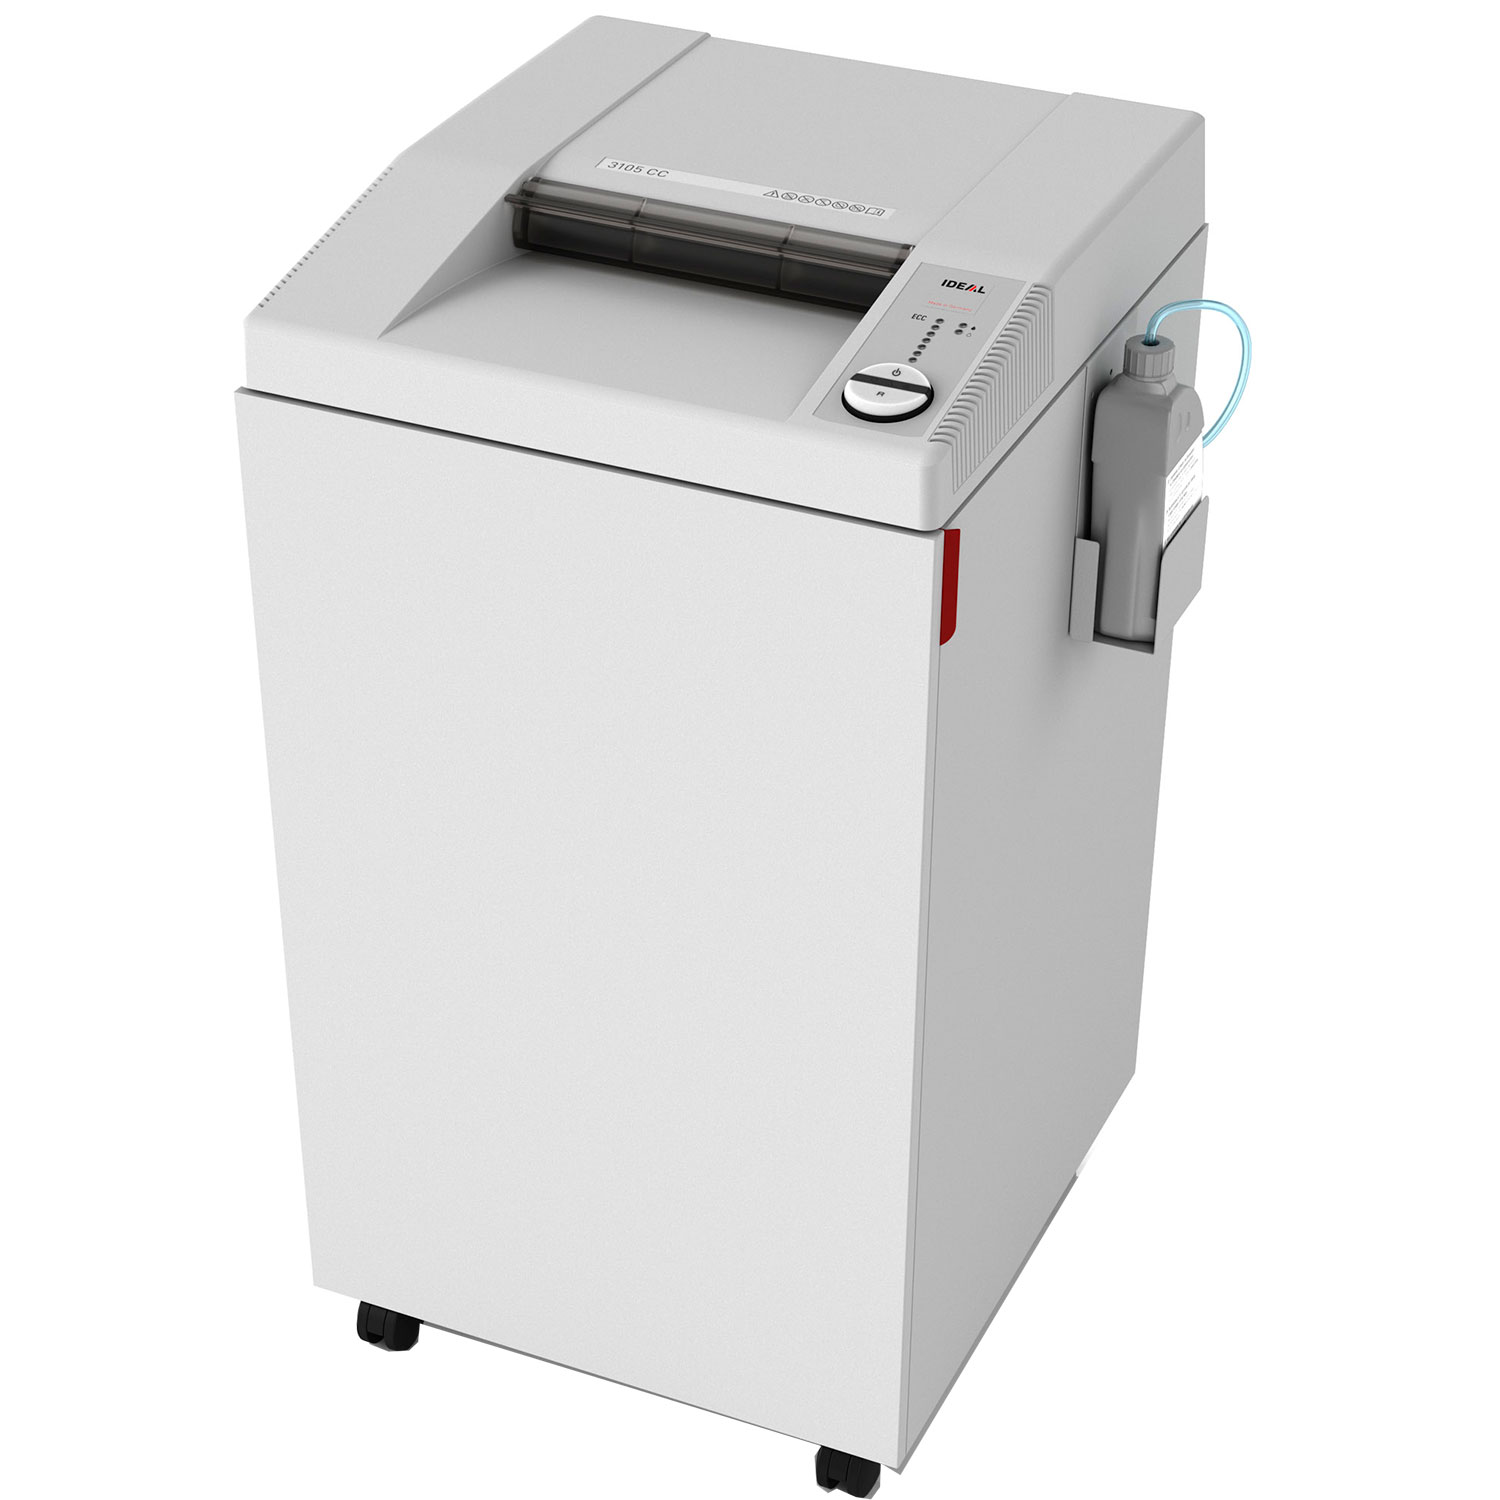 IDEAL 3105 Cross-Cut 4 x 40mm Paper Shredder